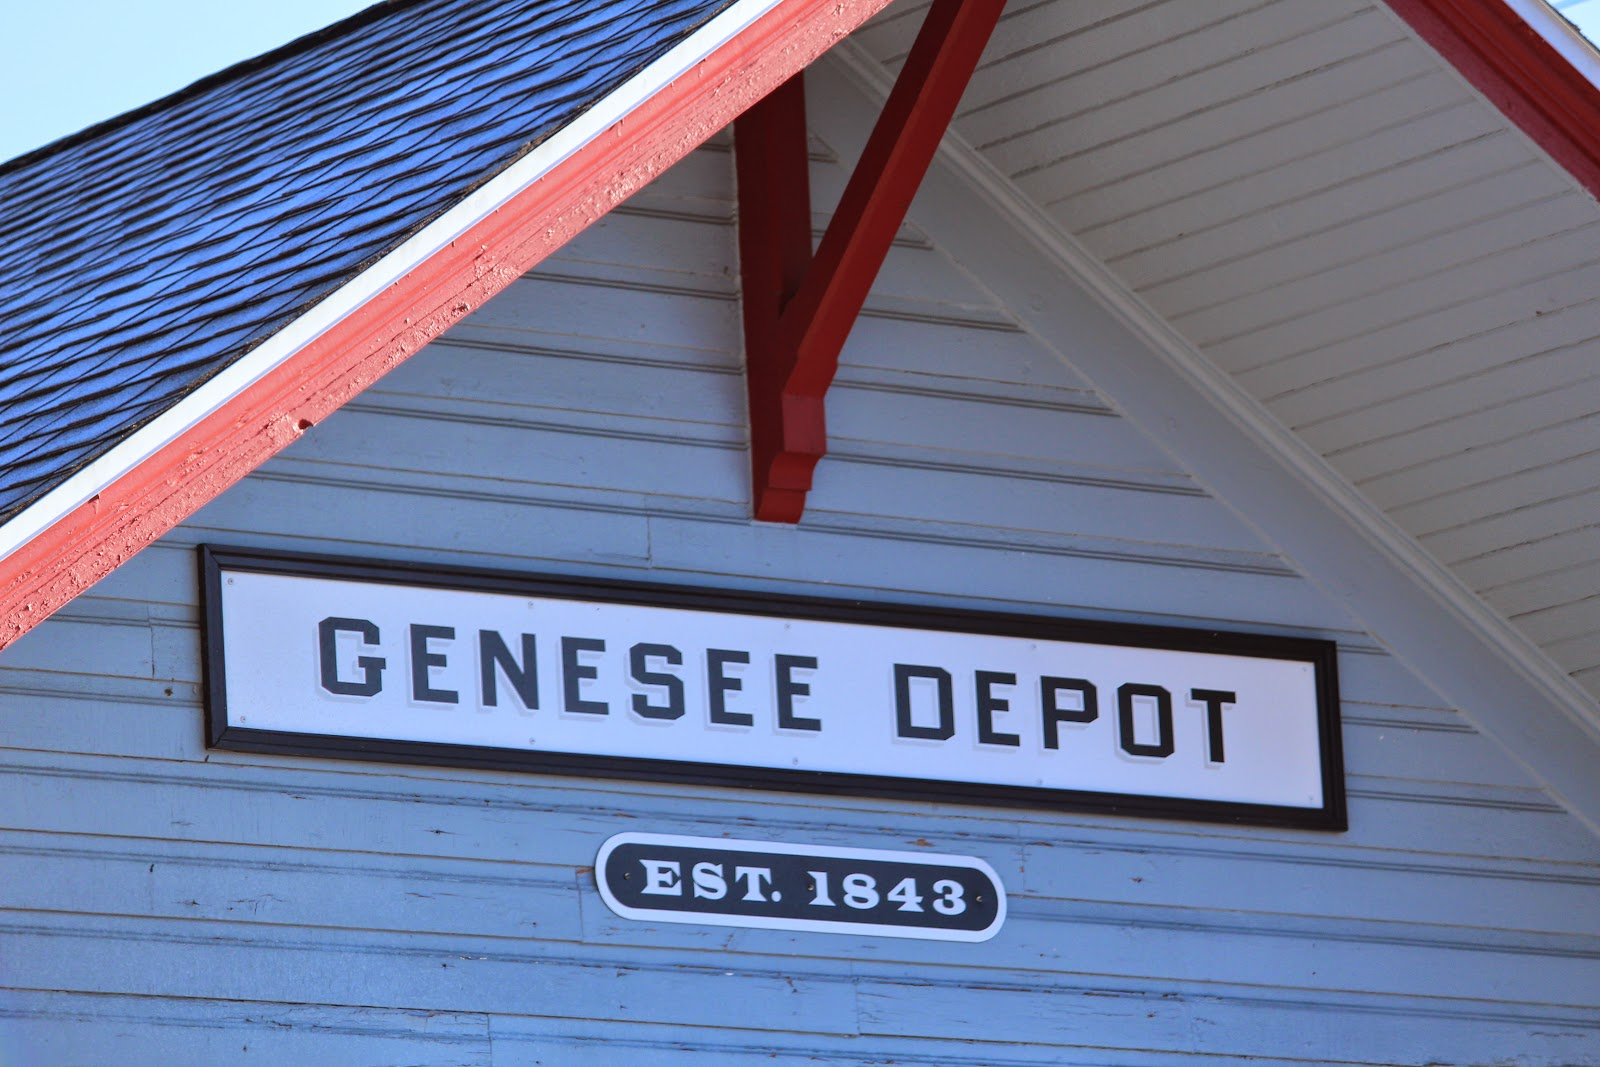 genesee depot mature dating site Welcome to m&t online banking for business and personal accounts returning users to log in, please provide your user id and passcode user id passcode log in.